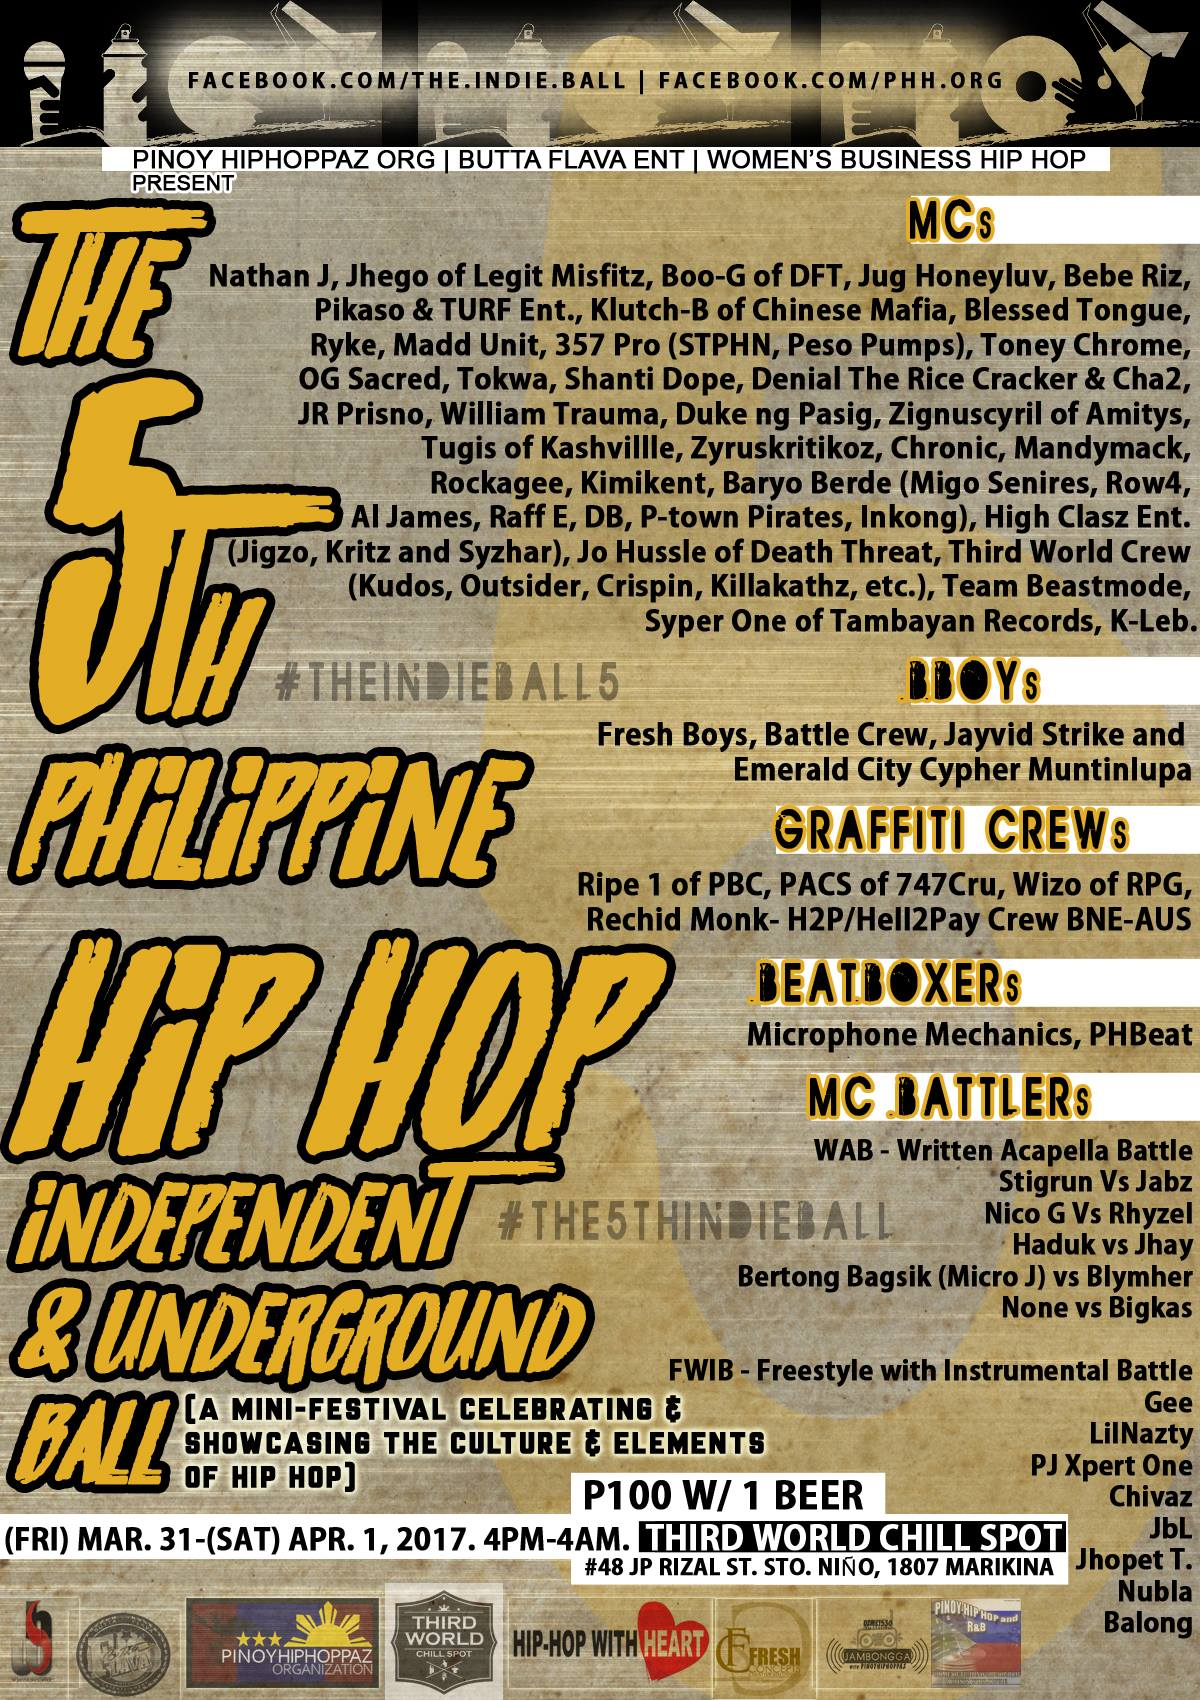 The Philippine Hip-Hop Independent and Underground Ball Page Liked · March 27 · Edited · RSVP/OFFICIAL EVENT PAGE: The 5th Philippine Hip-Hop Independent & Underground Ball The 5th Philippine Hip Hop Independent & Underground Ball (#TheIndieBall5 / #The5thIndieBall) Friday, March 31 to Saturday, April 1 4pm to 4am Third World Chill Spot (new location in Marikina) P100 w/ 1 beer After 3 years, it's time to do the event that brought together all the ELEMENTS of Hip Hop in order to celebrate the CULTURE of Hip-Hop! This is the event that began in August 2008 where you found artists/performers/fans of the different elements of Hip-Hop TOGETHER in 1 gathering! Poster designed by Bebe Riz of Fresh Concepts Creative Solutions. — with Stretch Kablix Carter, Jug Ramos, Flava Matikz and 97 others at Third World Chill Spot. ---- Jug Honeyluv Ramos shared The Philippine Hip-Hop Independent and Underground Ball's photo — with Pol Calinawan and 98 others. March 27 at 7:49pm · #The5thIndieBall #TheIndieBall5 #FinalPoster Read the poster and the description of the poster. #Share #Spread #Support #Showcase #Since2008 #MiniFest #Elements #HipHop #Culture #Celebration #Party #Ball #Music 👍👊✌️👏✊